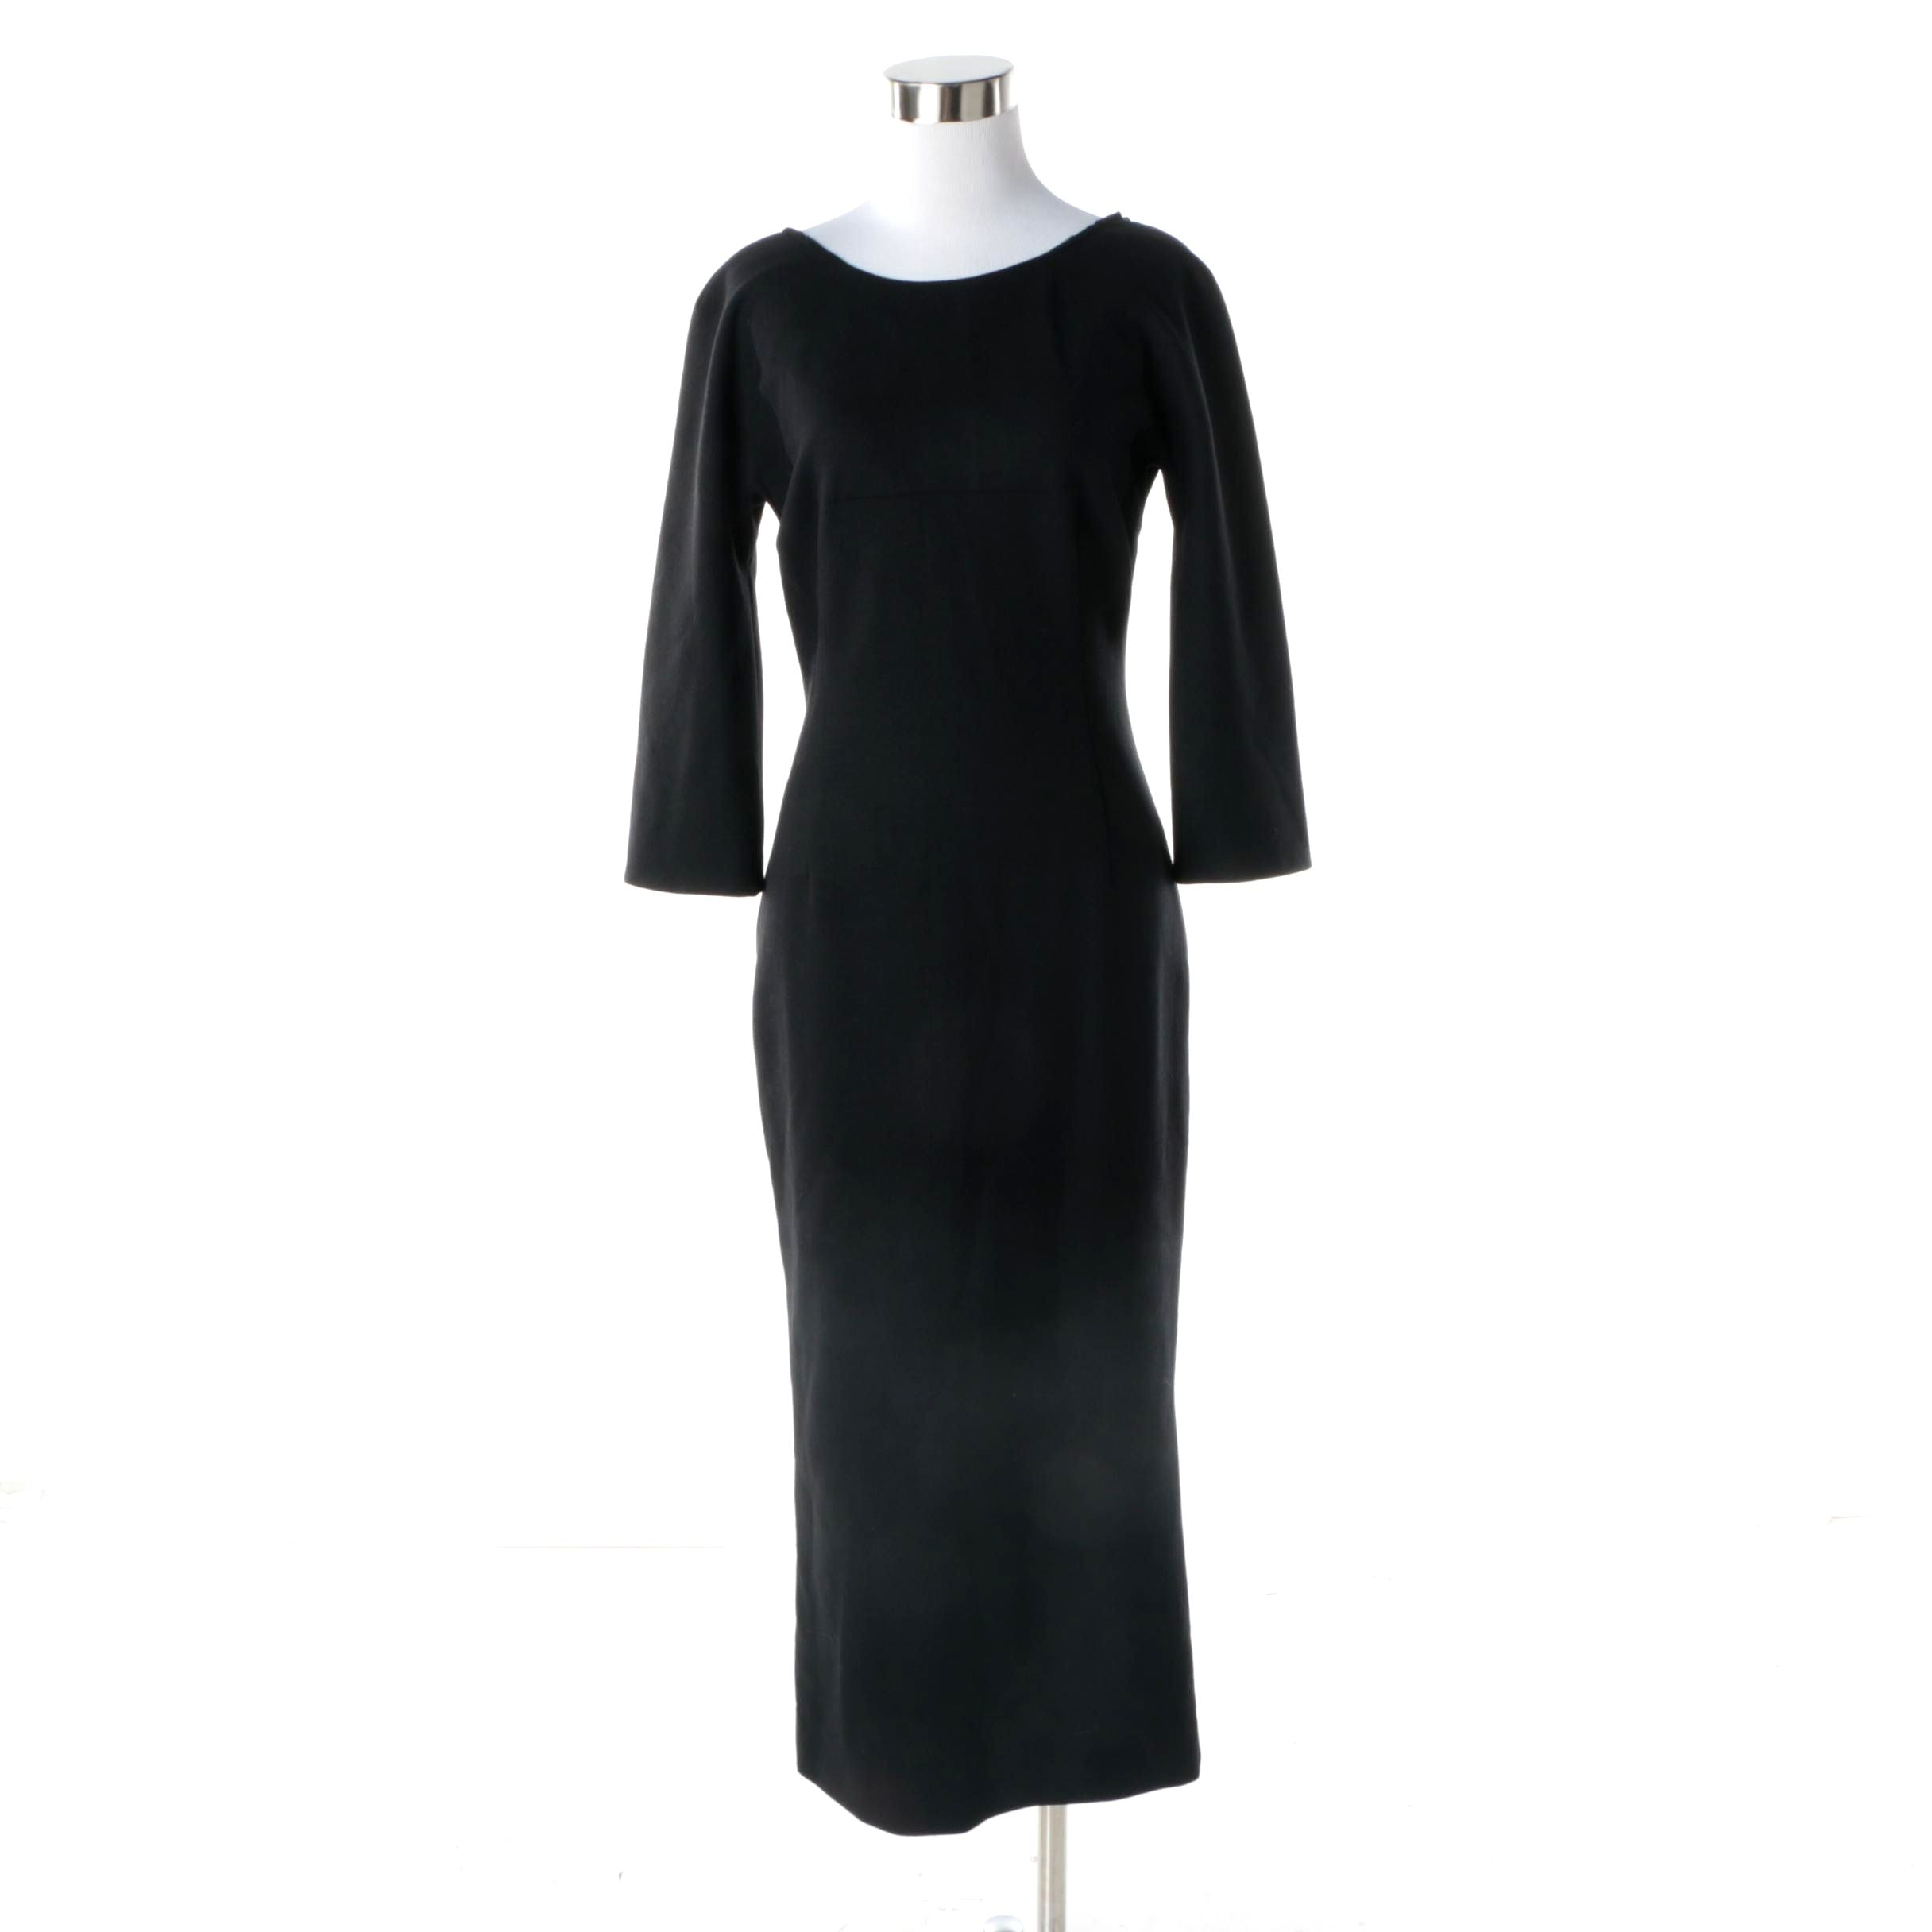 Dolce & Gabbana Black Wool Blend Cocktail Dress